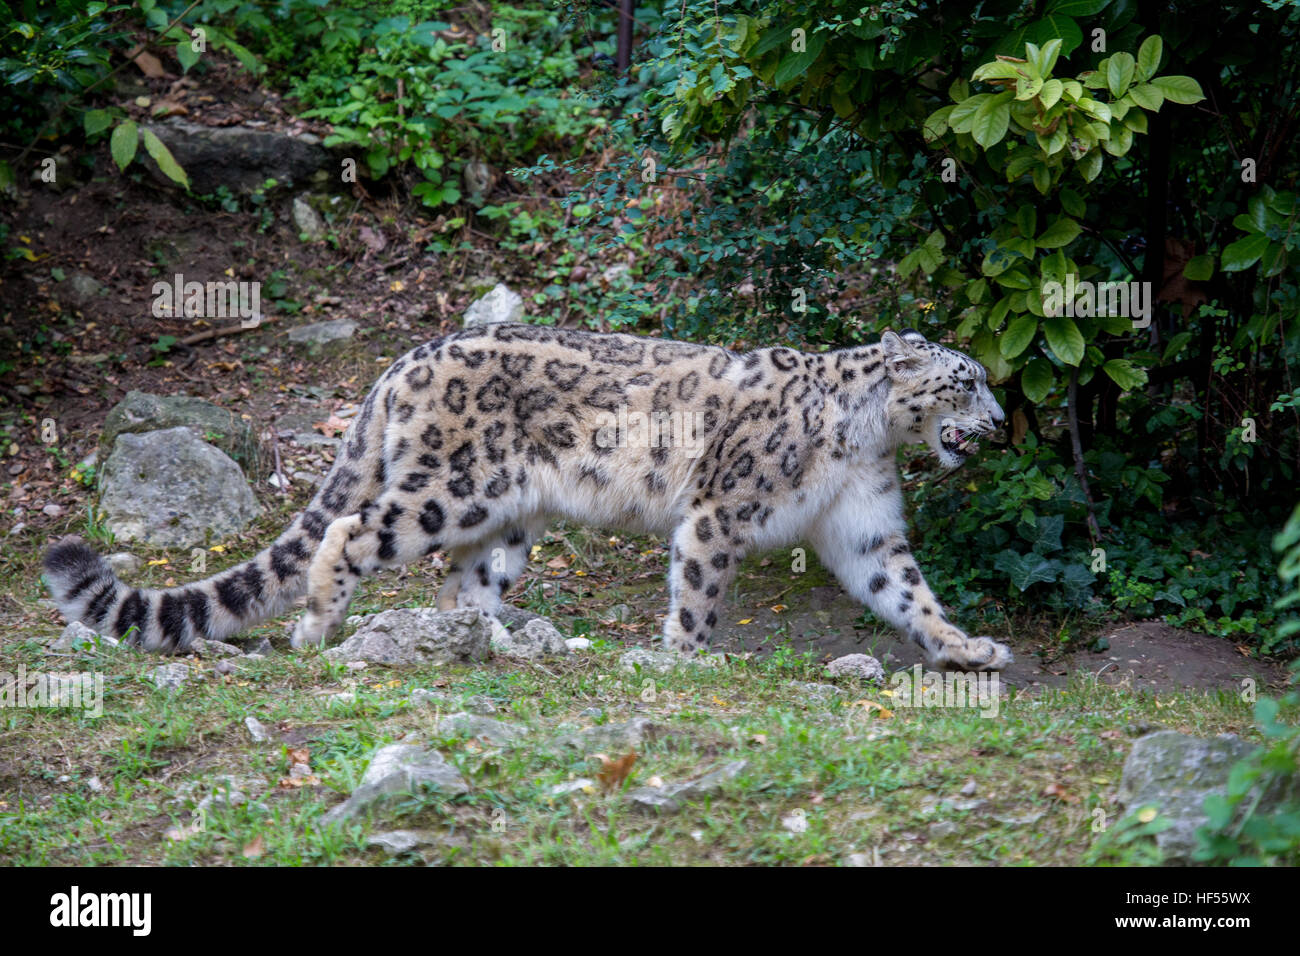 Male snow leopard cub looking up Stock Photo, Royalty Free Image ...